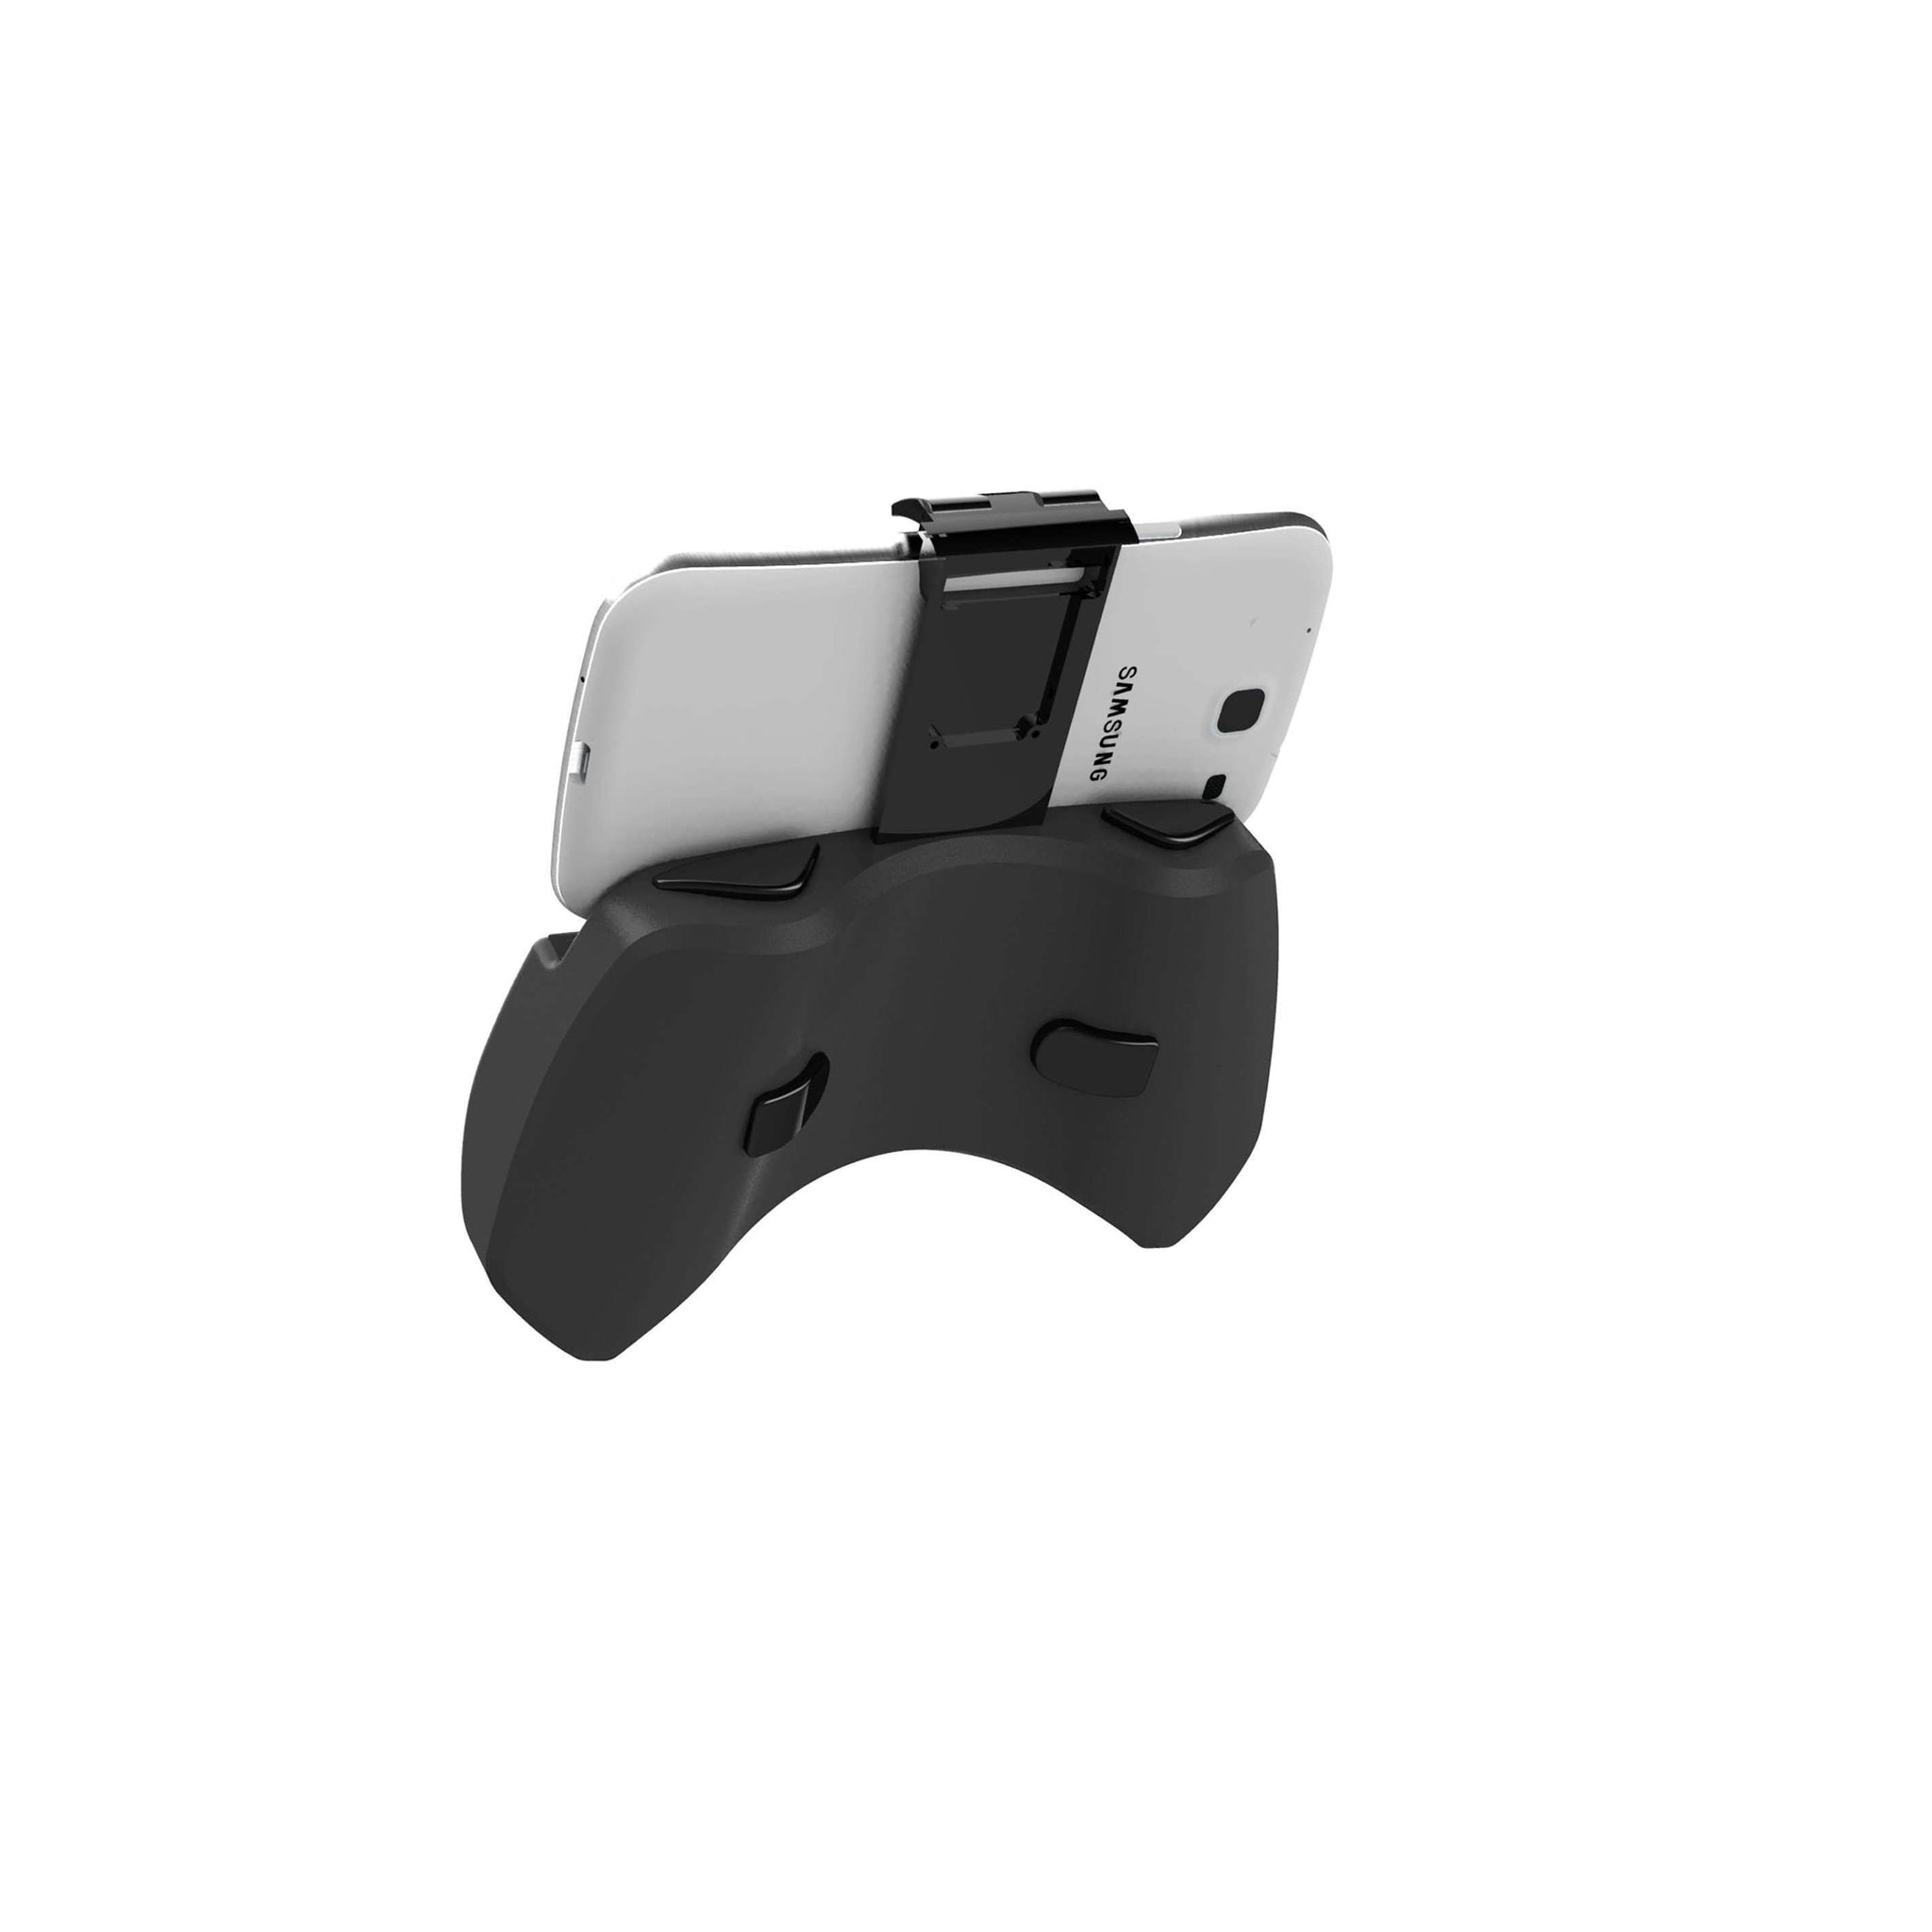 Play-X5 | Game Controller | Bluetooth | Ergonomic Design | For PC, Mobile, Laptop